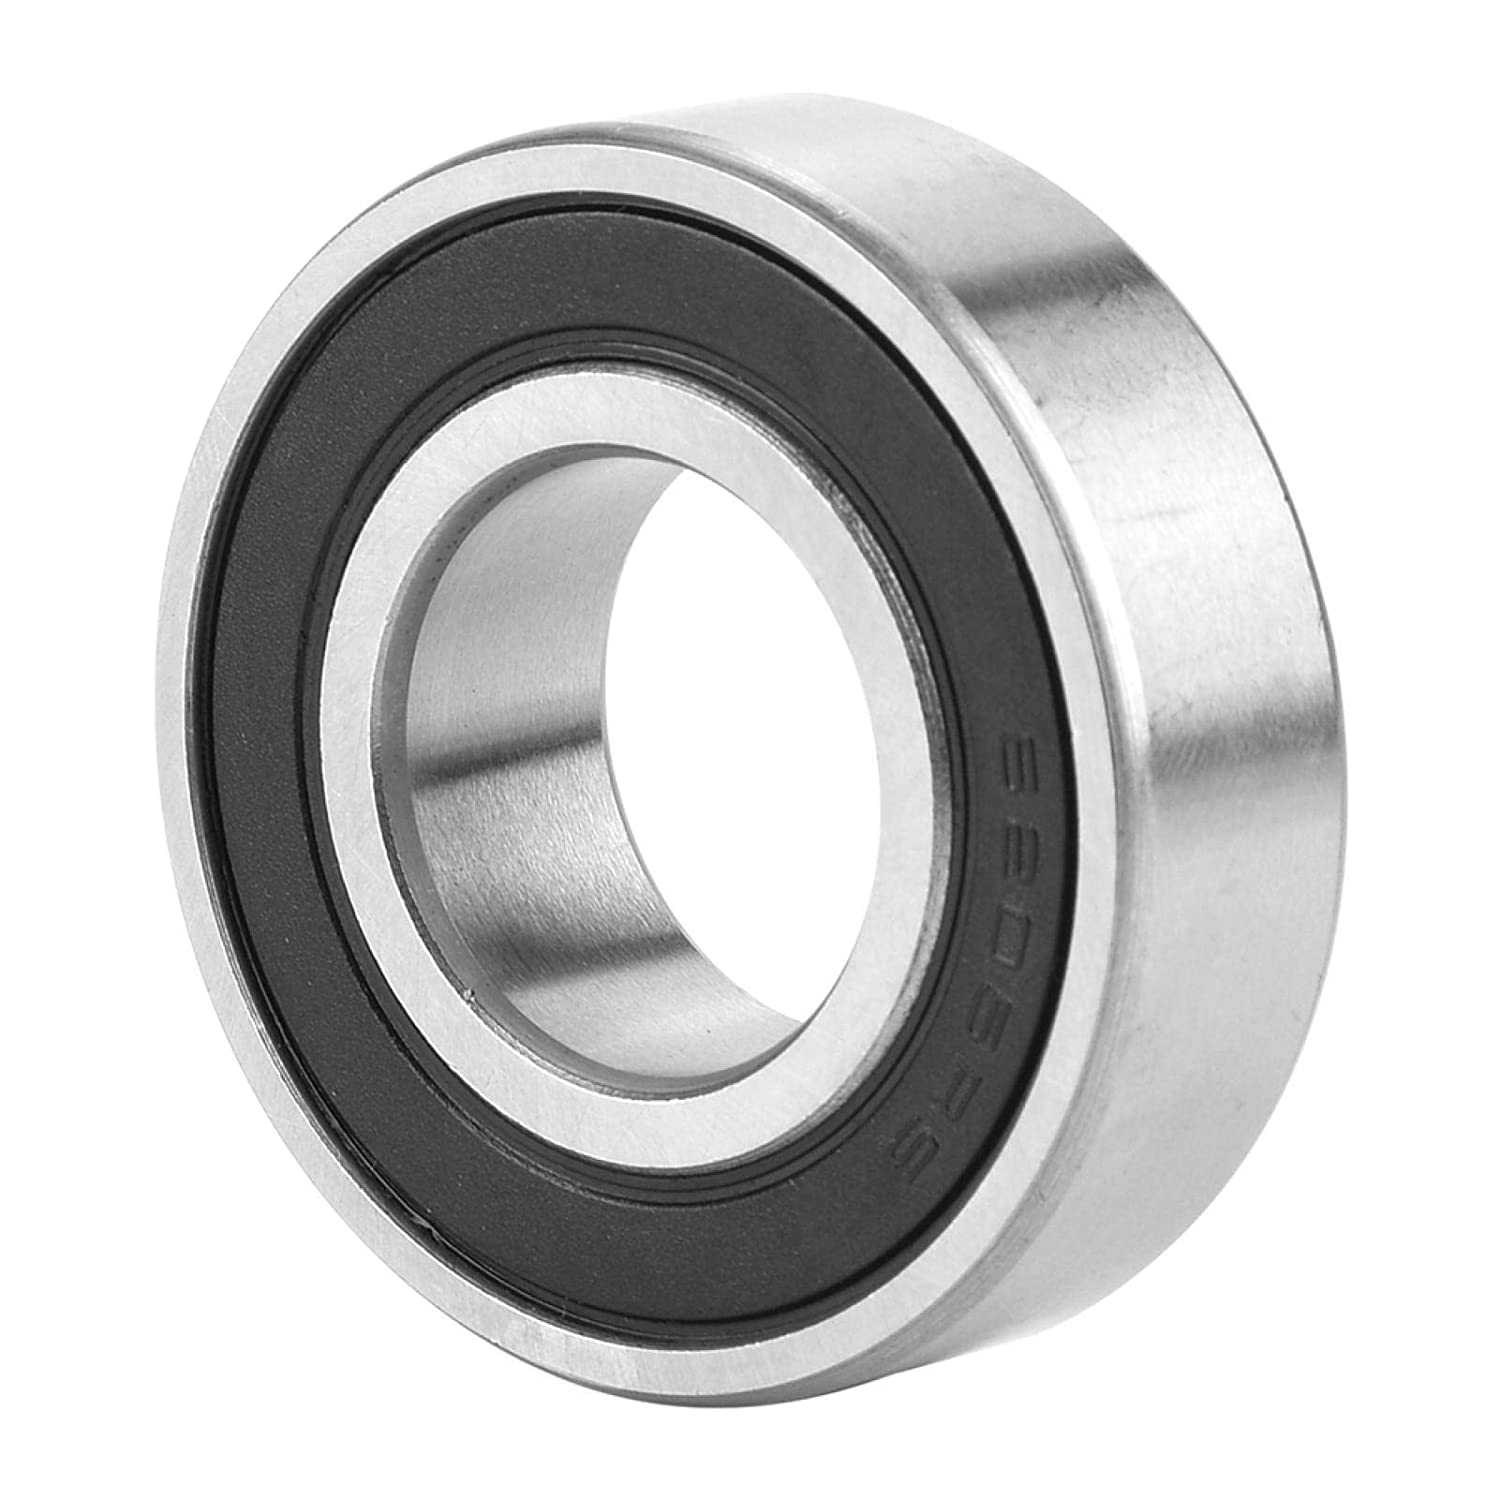 Ball Bearings Shexton 6205-2RS High Factory outlet Lowest price challenge Speed Double-Sided Seal Deep